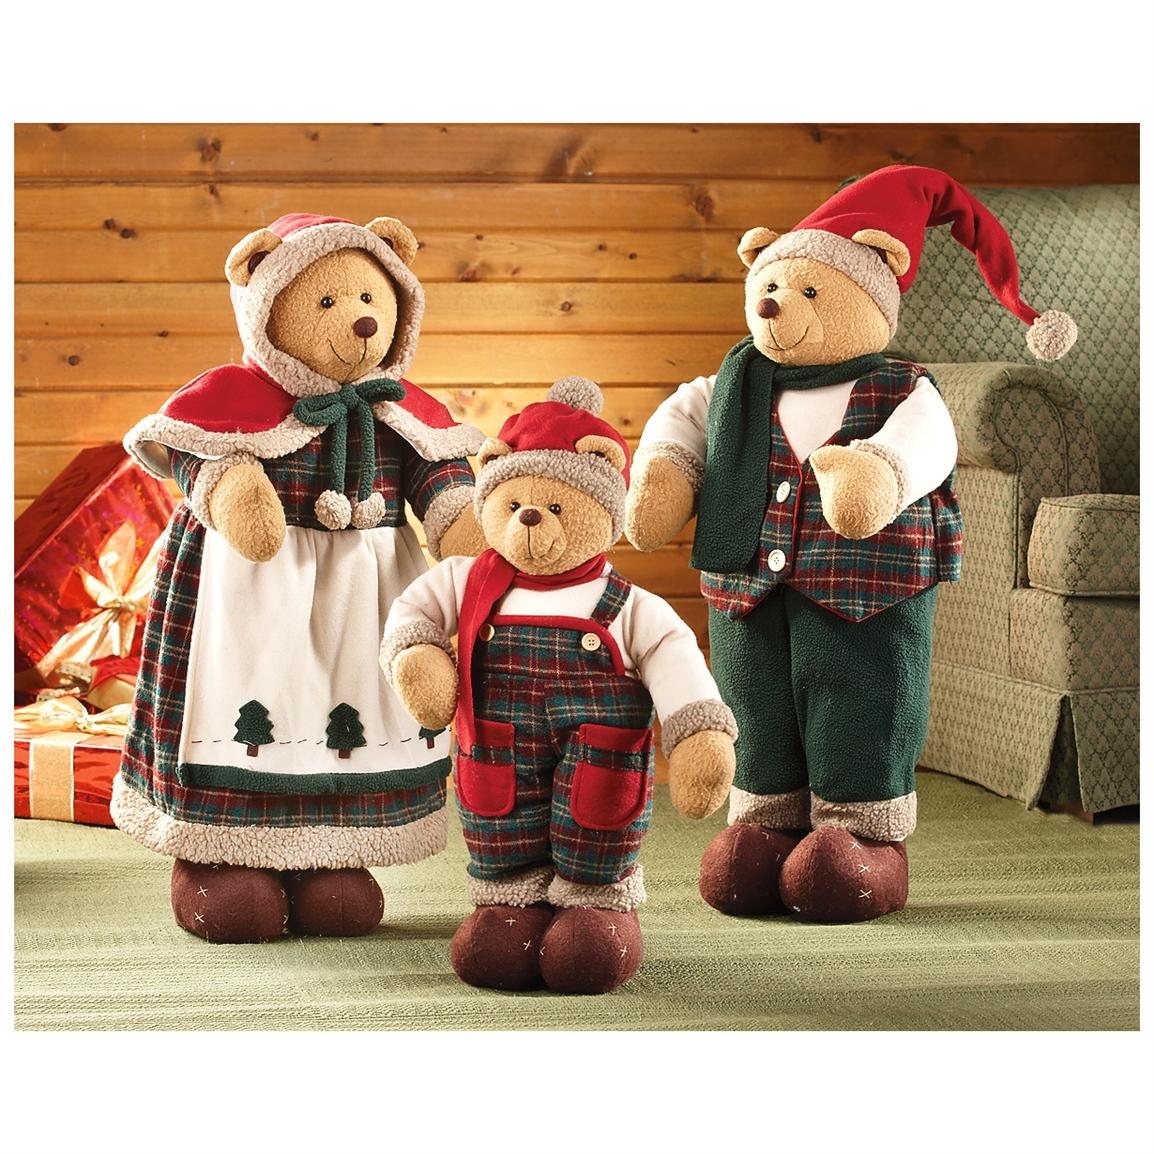 Handcrafted Santa Bears Family